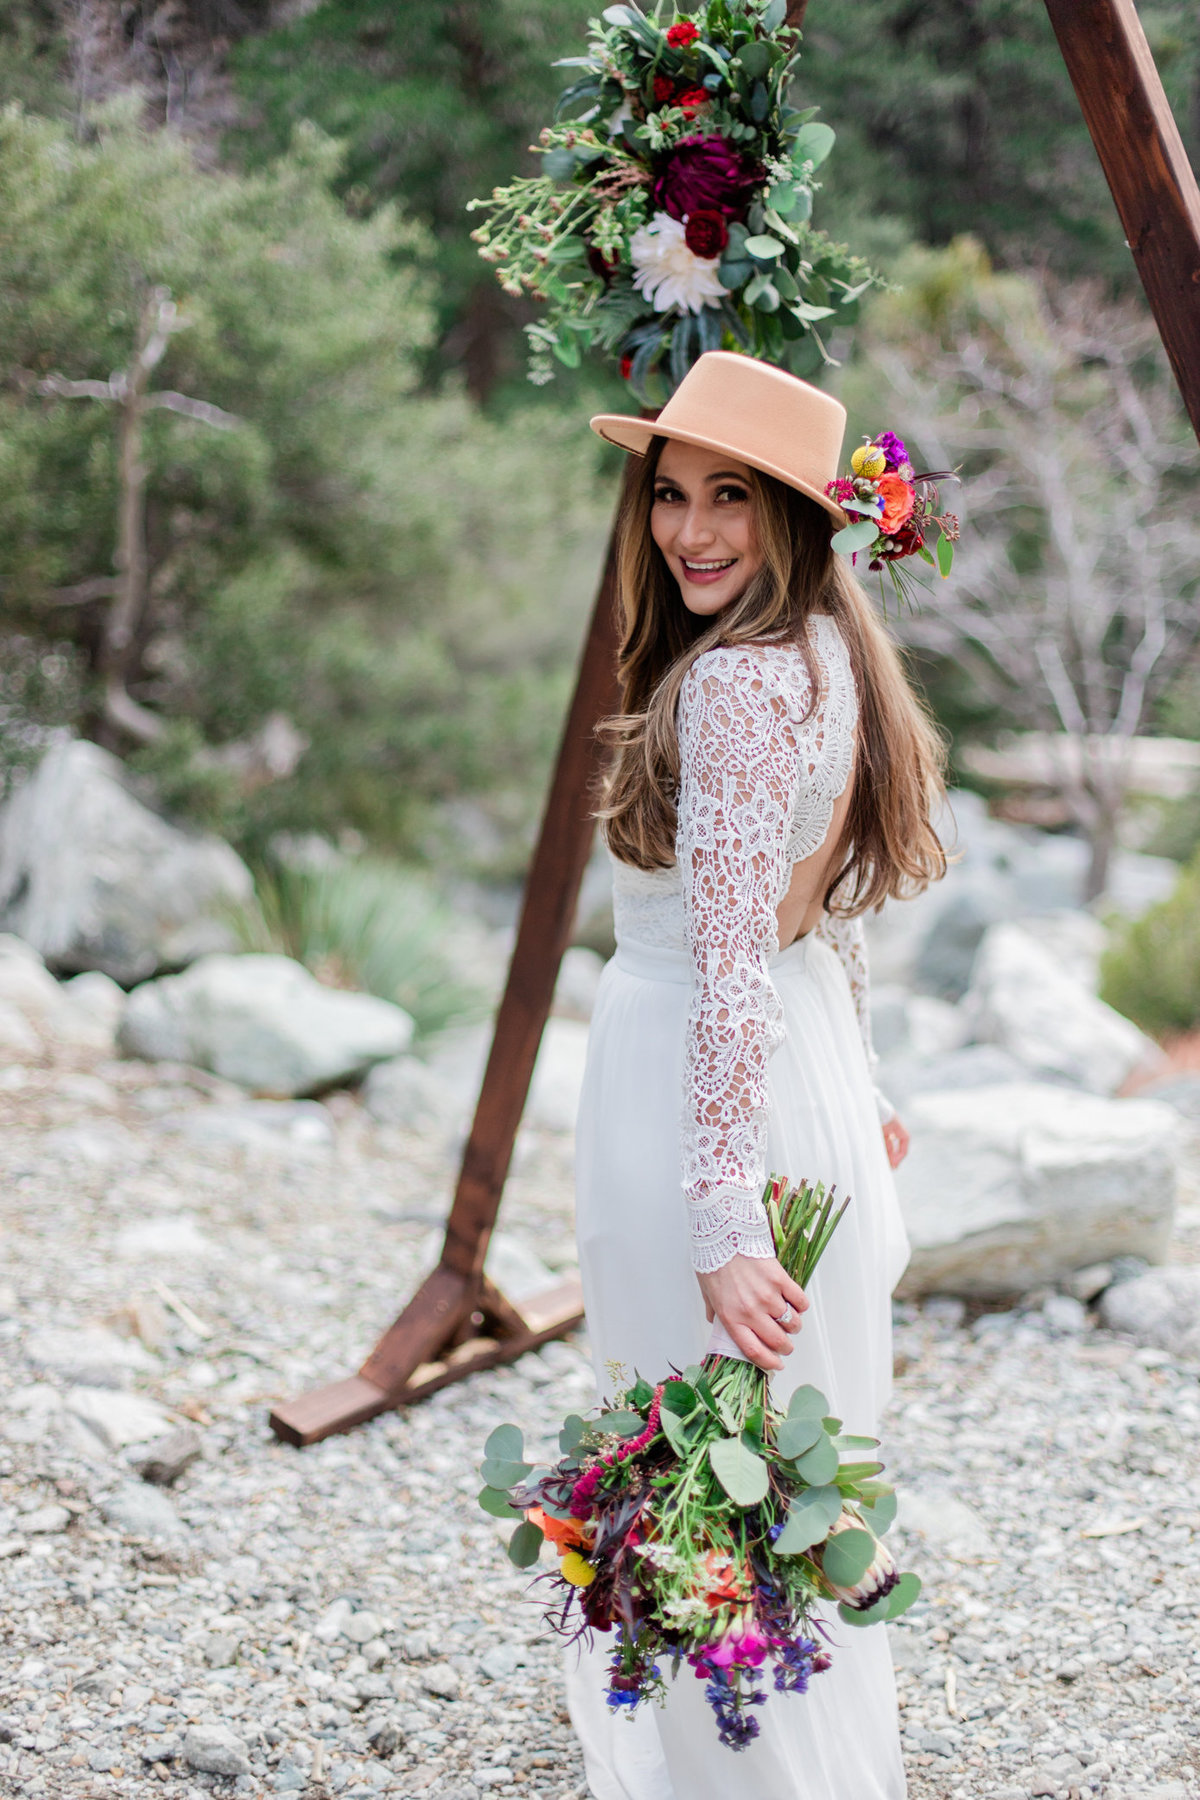 Mt. Baldy Elopement, Wildflower Bouquet, Mt. Baldy Styled Shoot, Mt. Baldy Wedding, Forest Elopement, Forest Wedding, Boho Wedding, Boho Elopement, Mt. Baldy Boho, Forest Boho, Woodland Boho S&W-46